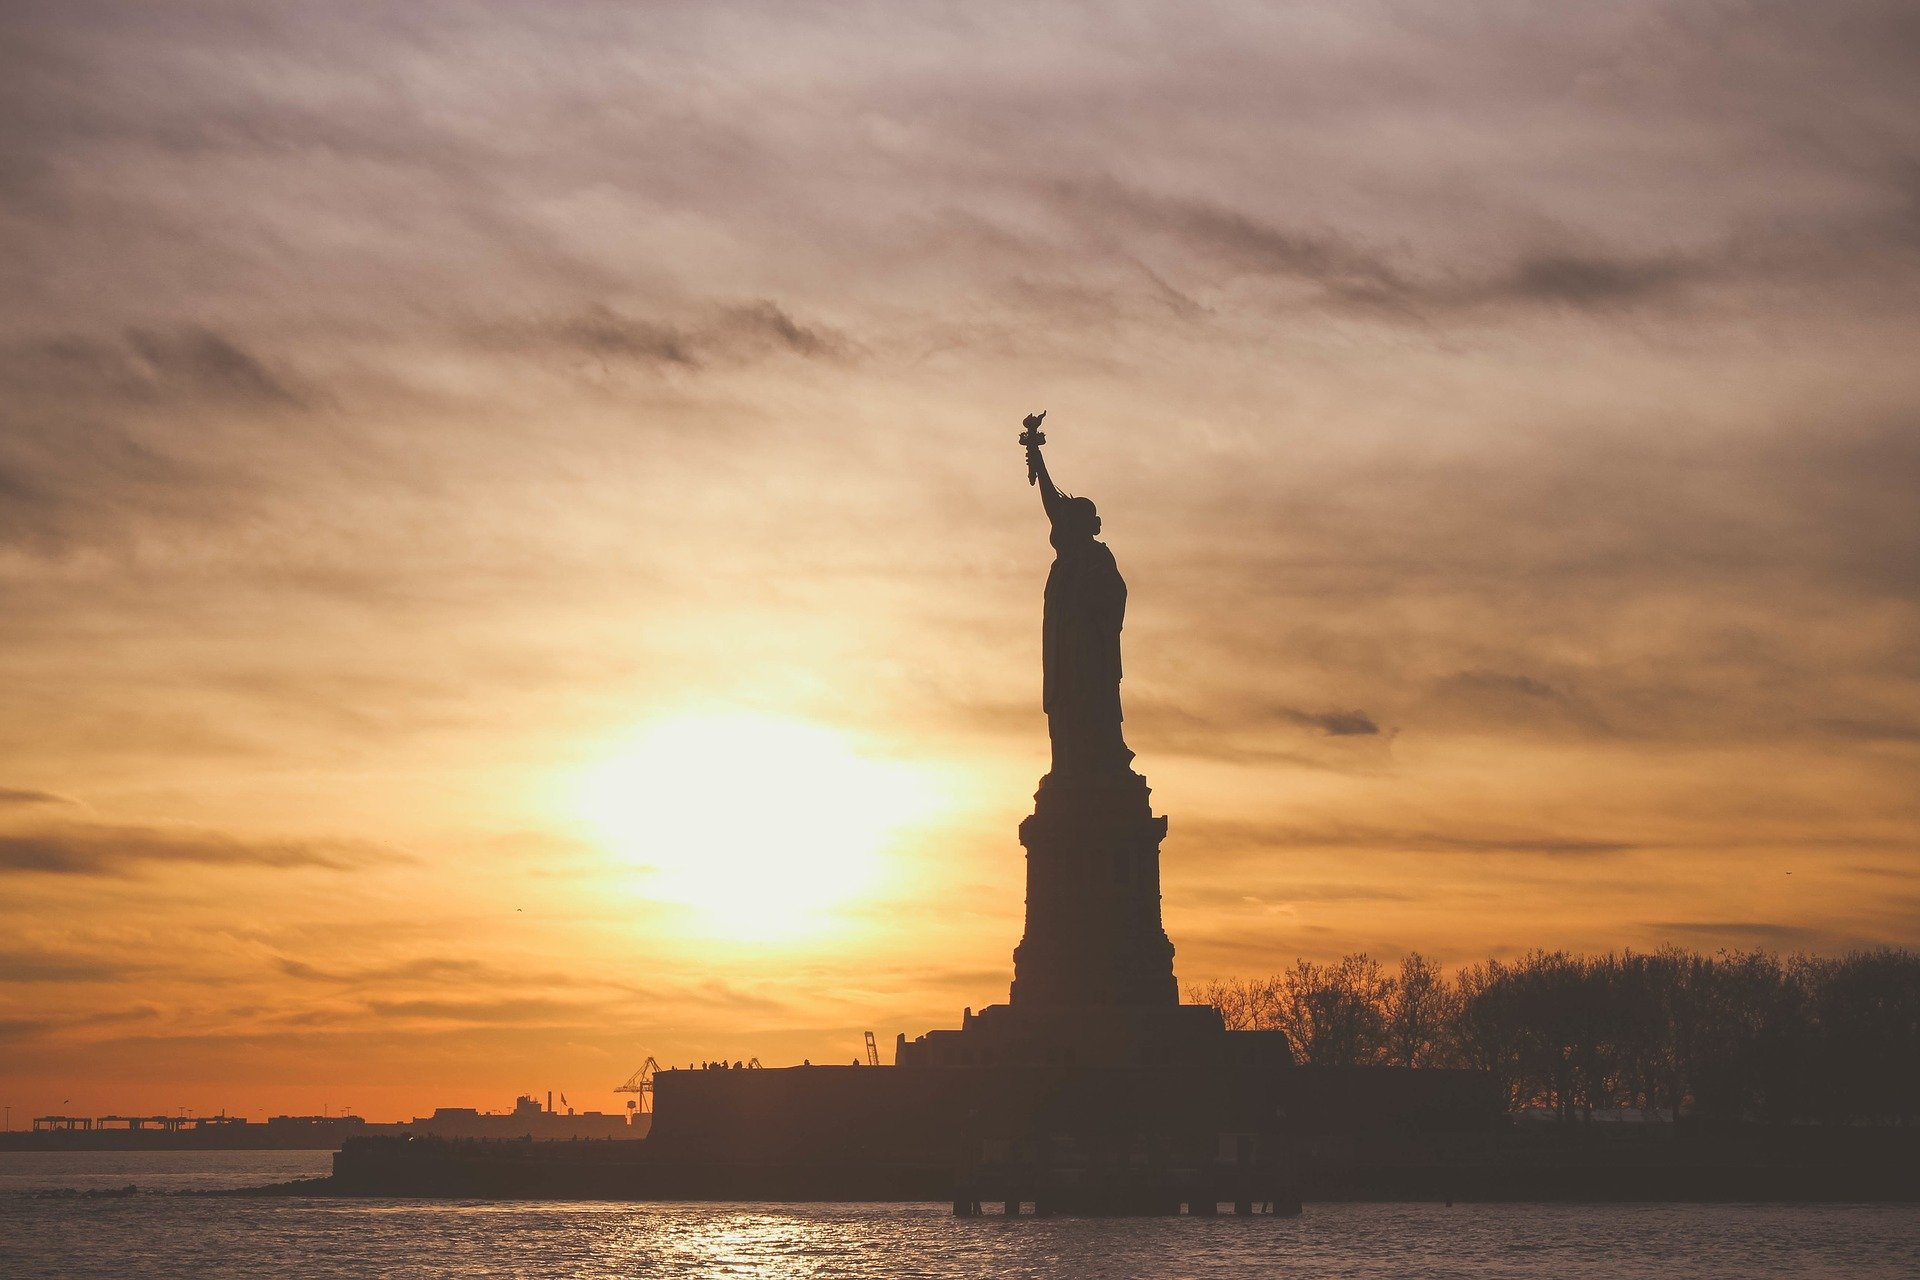 A photo of the Statue of Liberty in New York City